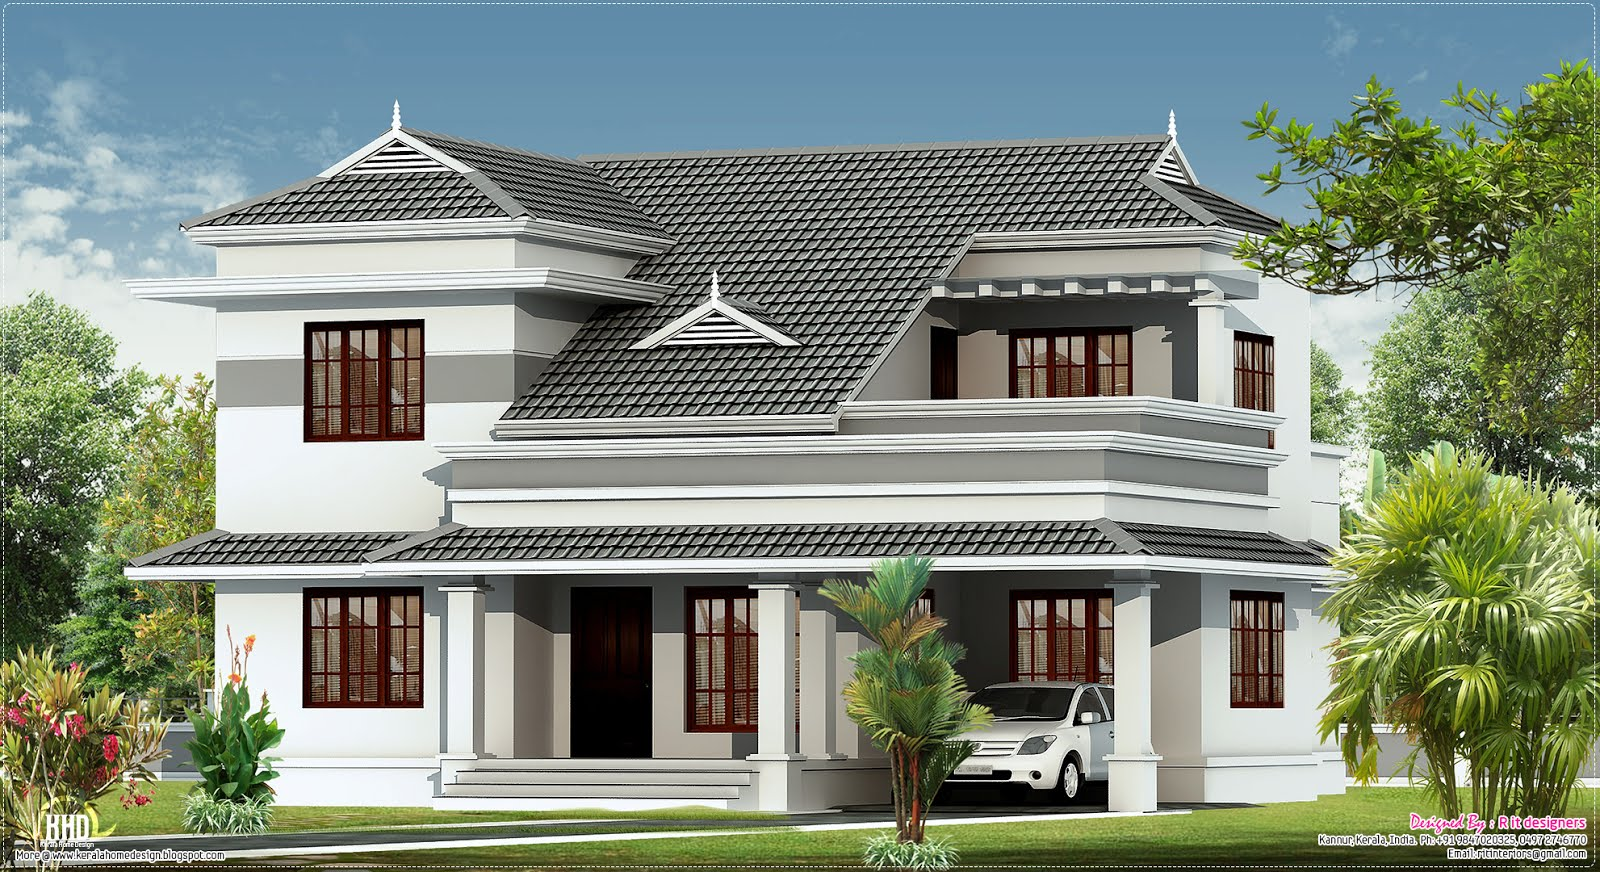 New villa design in 2250 kerala home design and for New design house image